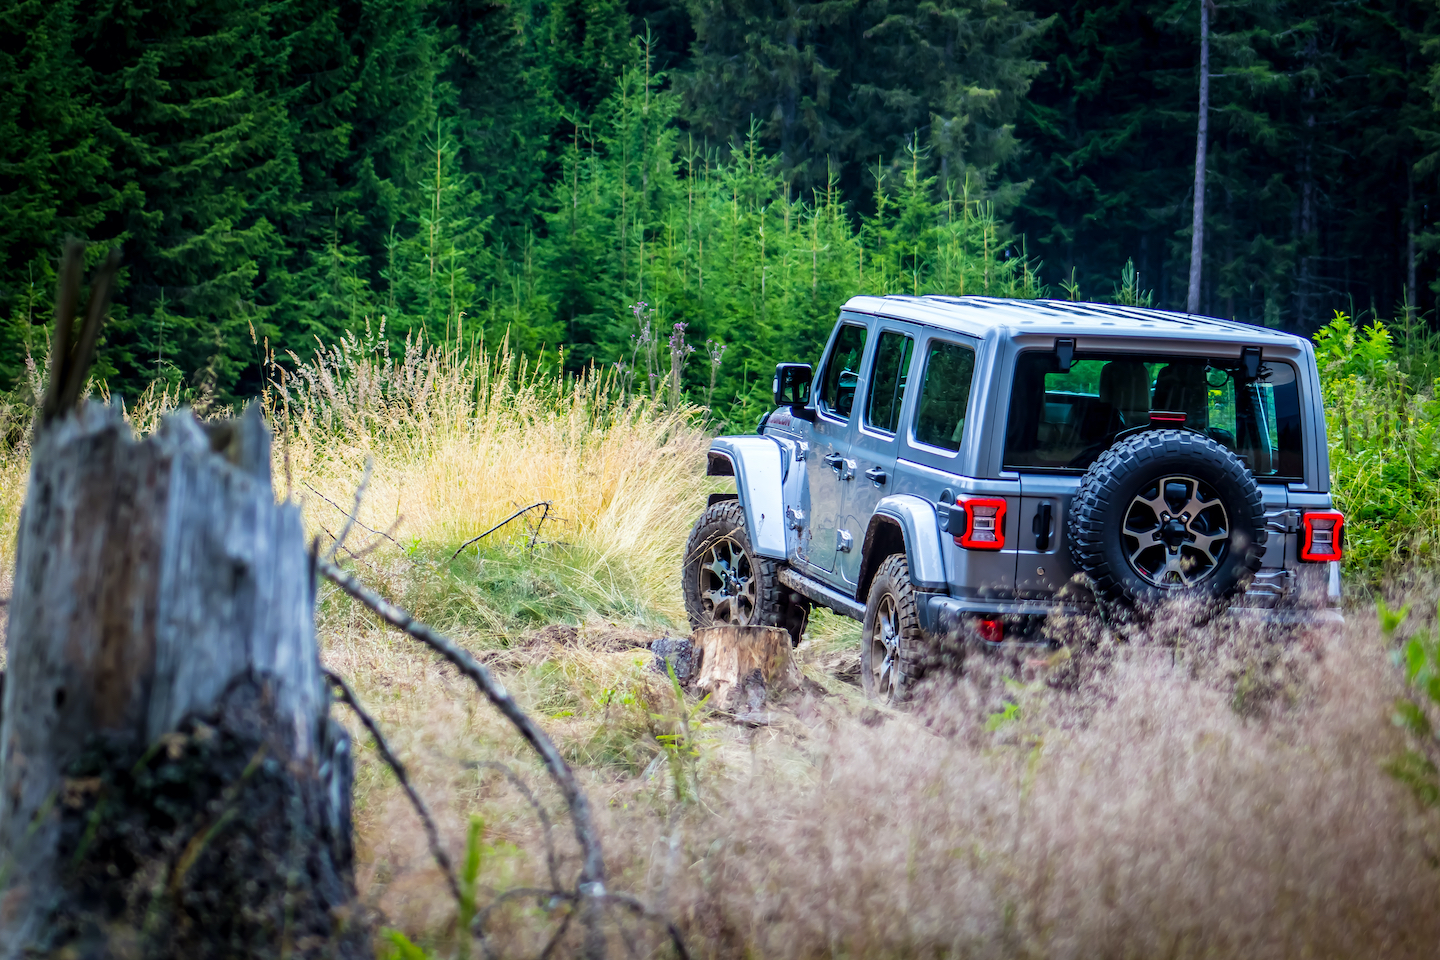 Key Off-Roading Features of the Jeep Wrangler